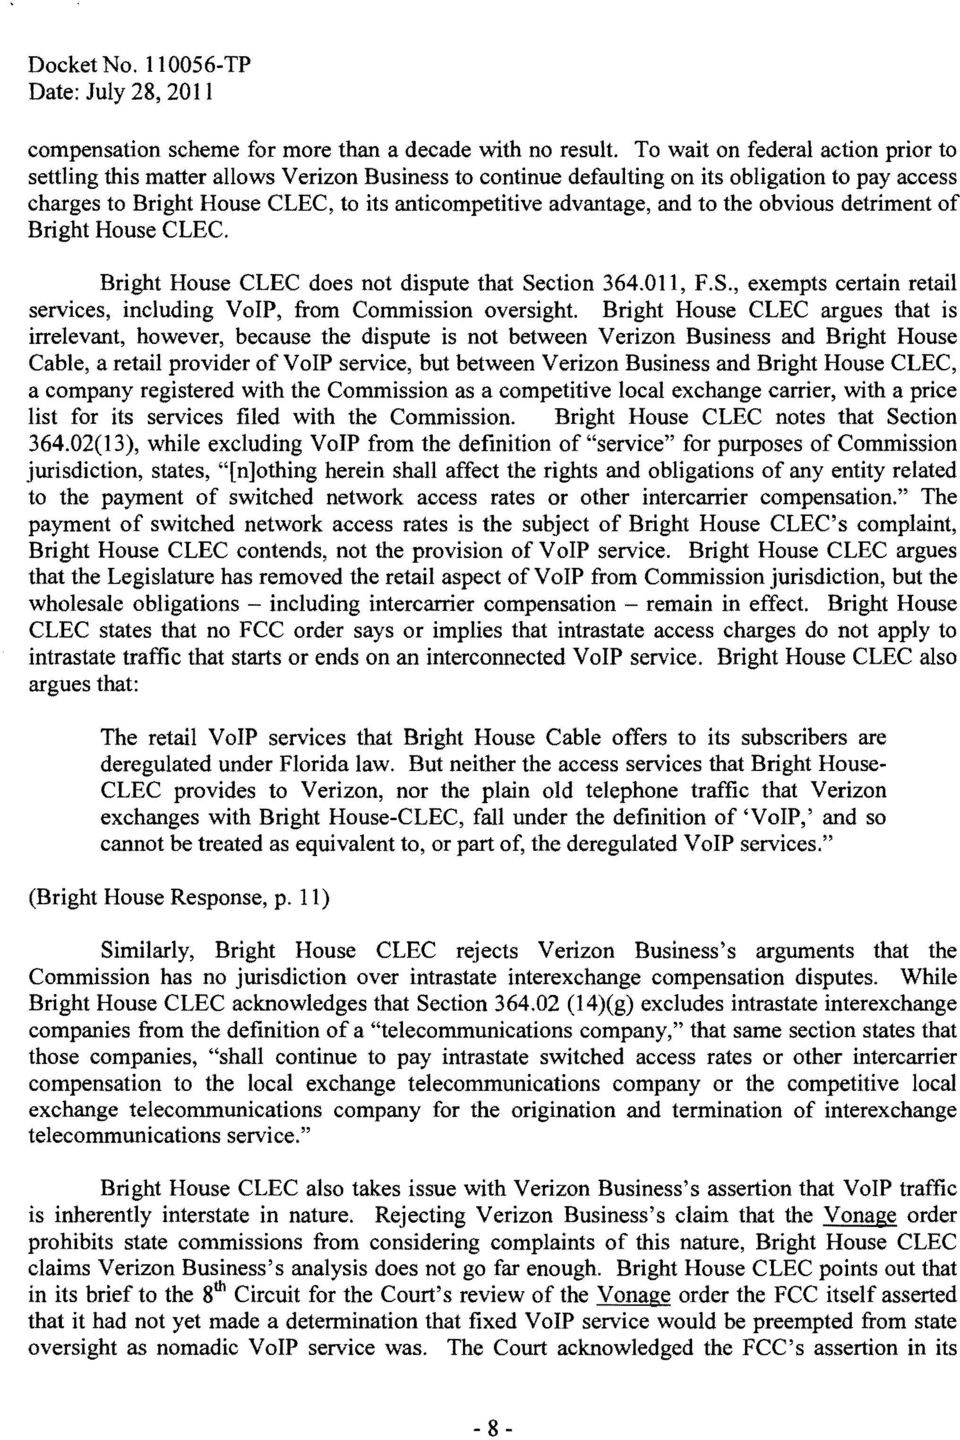 and to the obvious detriment of Bright House CLEC. Bright House CLEC does not dispute that Section 364.011, F.S., exempts certain retail services, including VoIP, from Commission oversight.